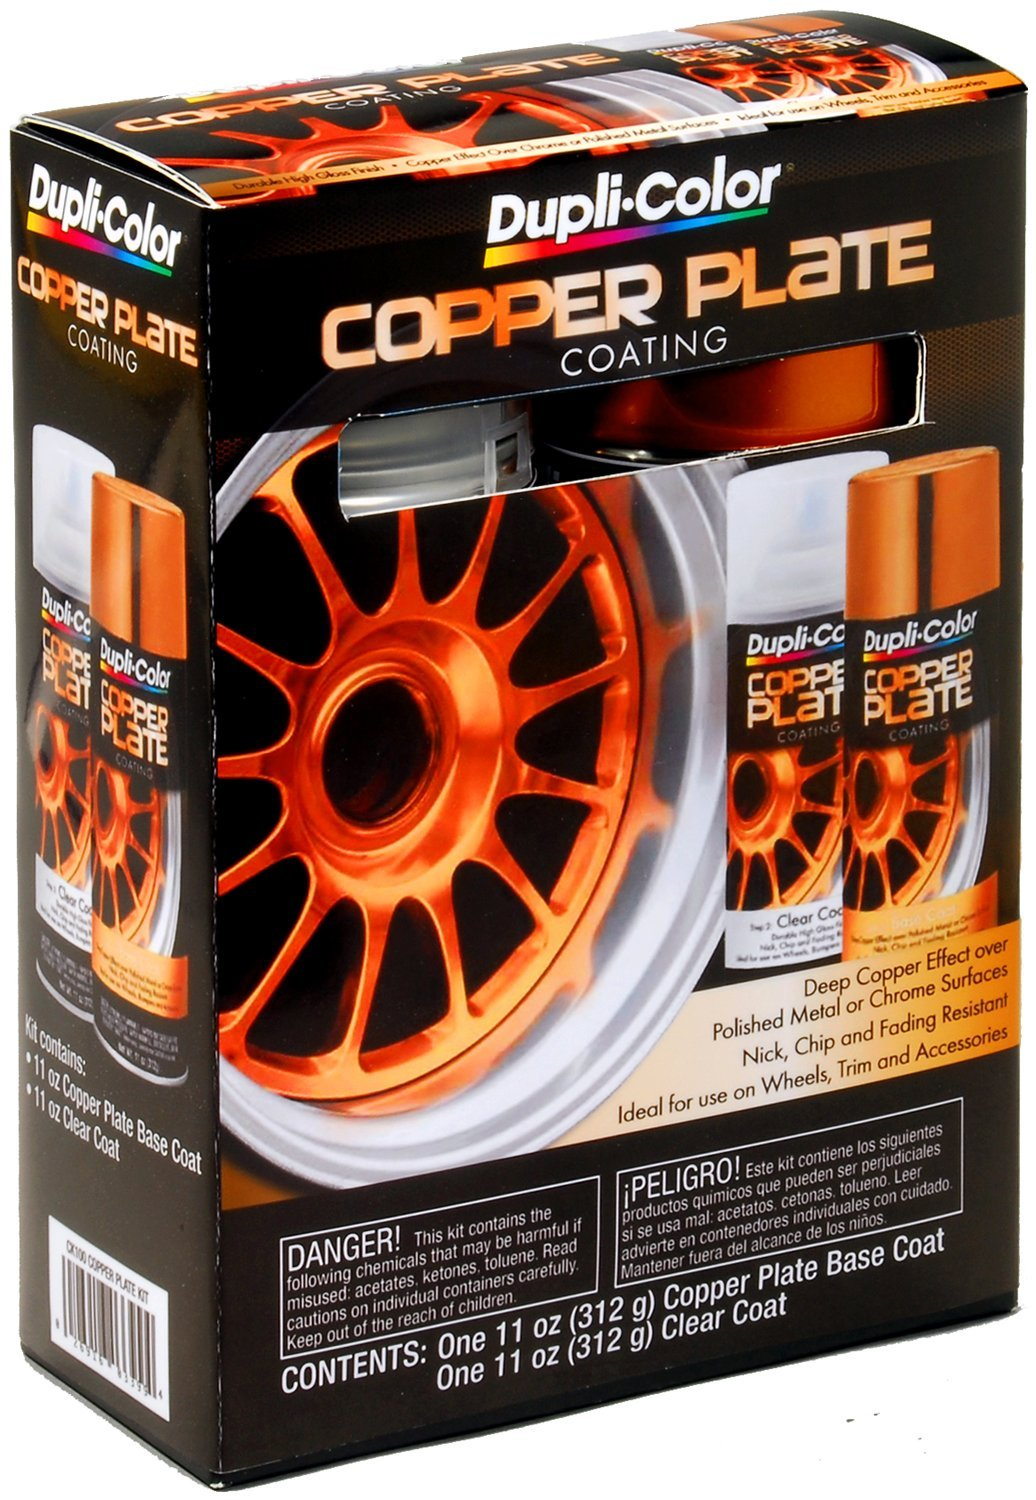 Dupli Color Ck100 Copper Plate Coating Kit Automotive Above Is The Circuit Board Which Attaches To Your Spokes Below A